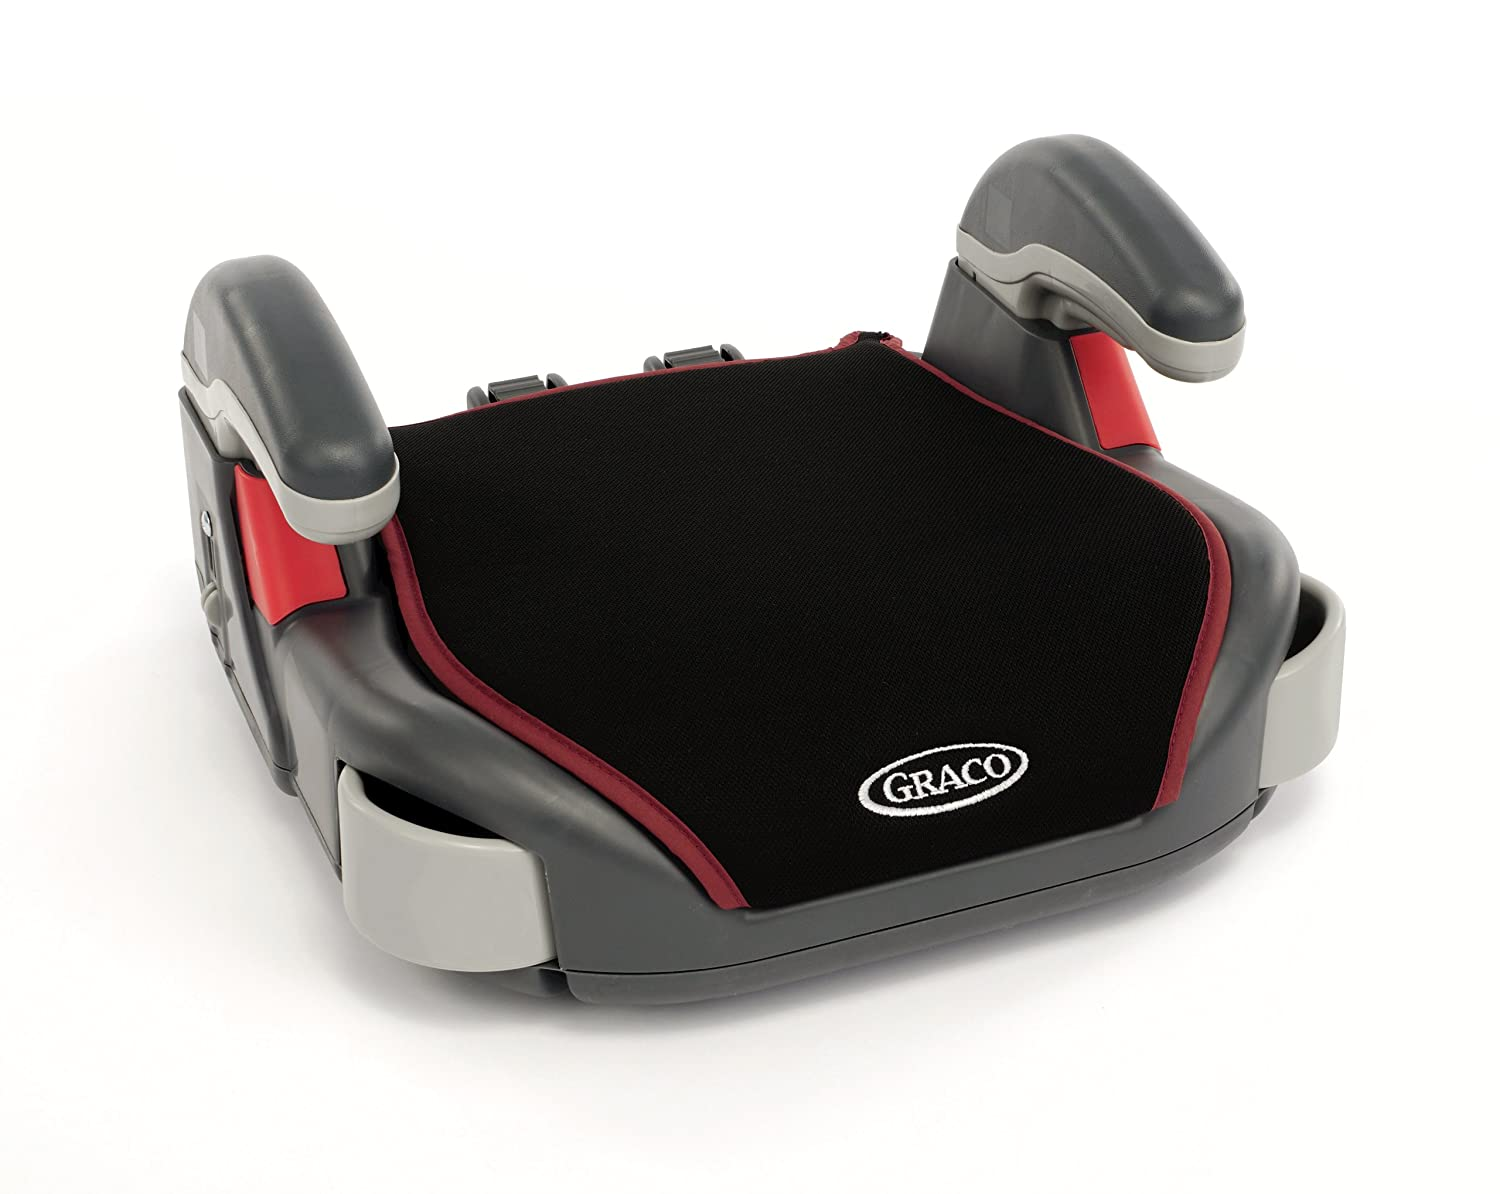 Graco Junior Group 3 Booster Car Seat